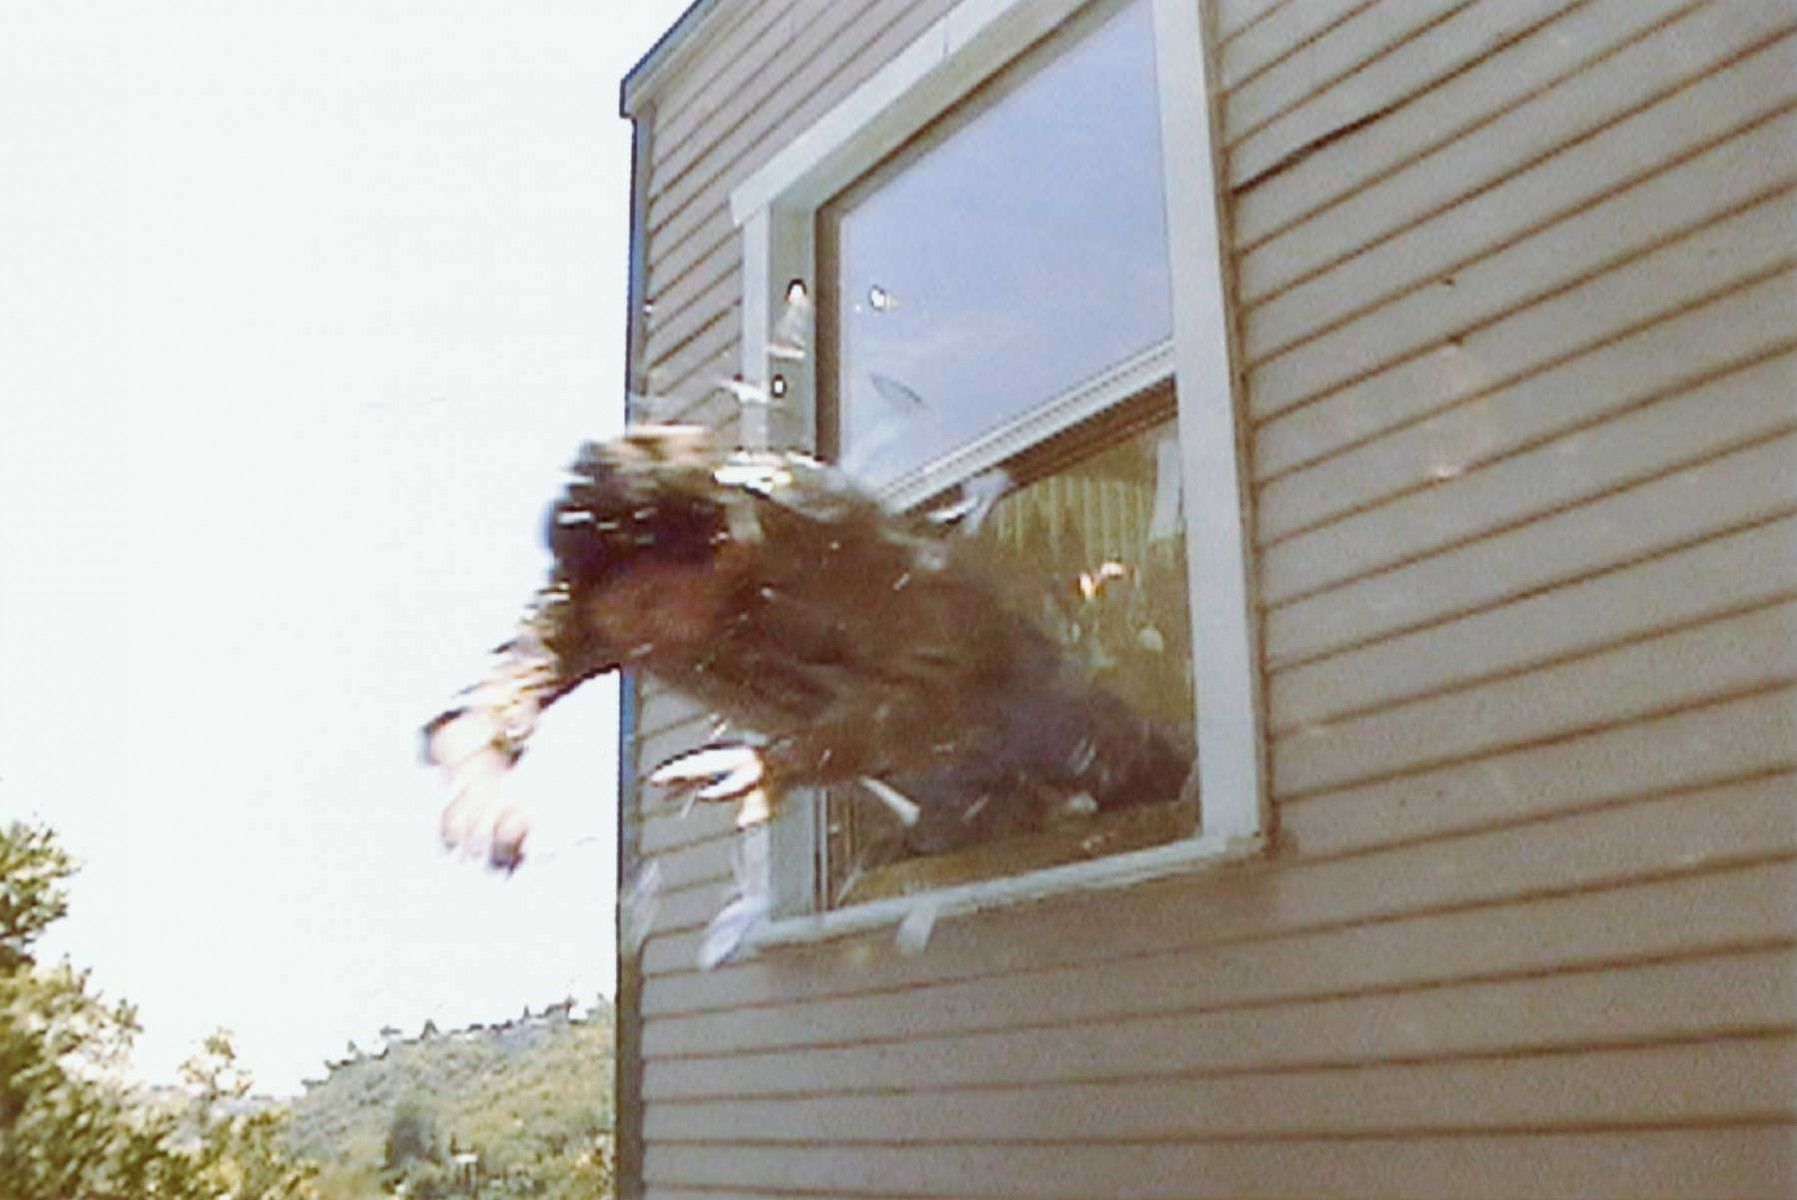 person midway jumping out of window of home